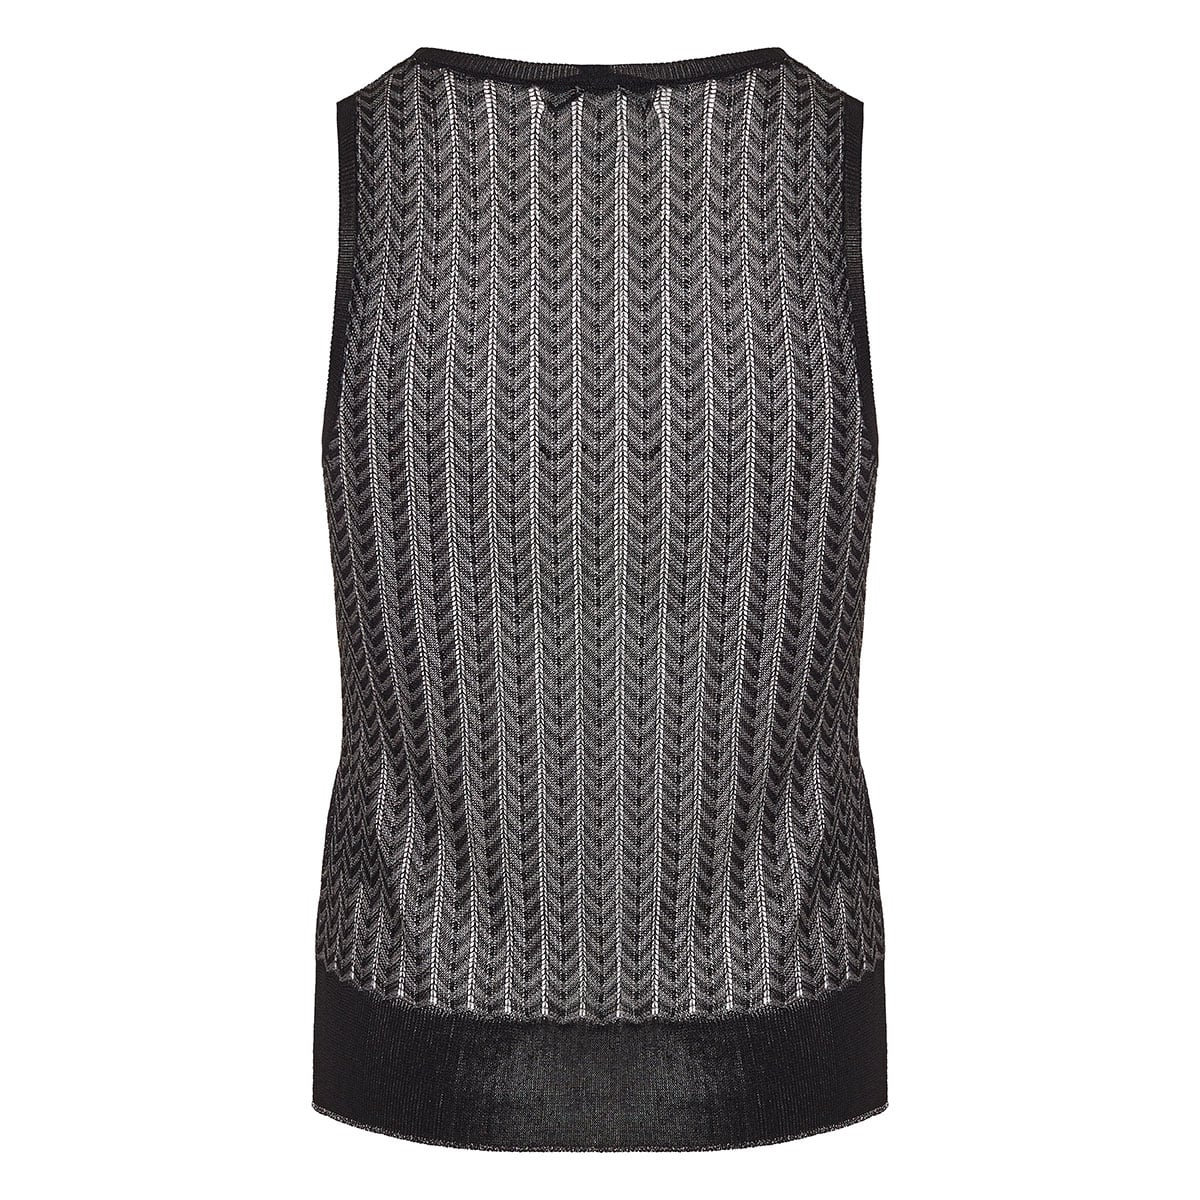 Rower lurex knitted top